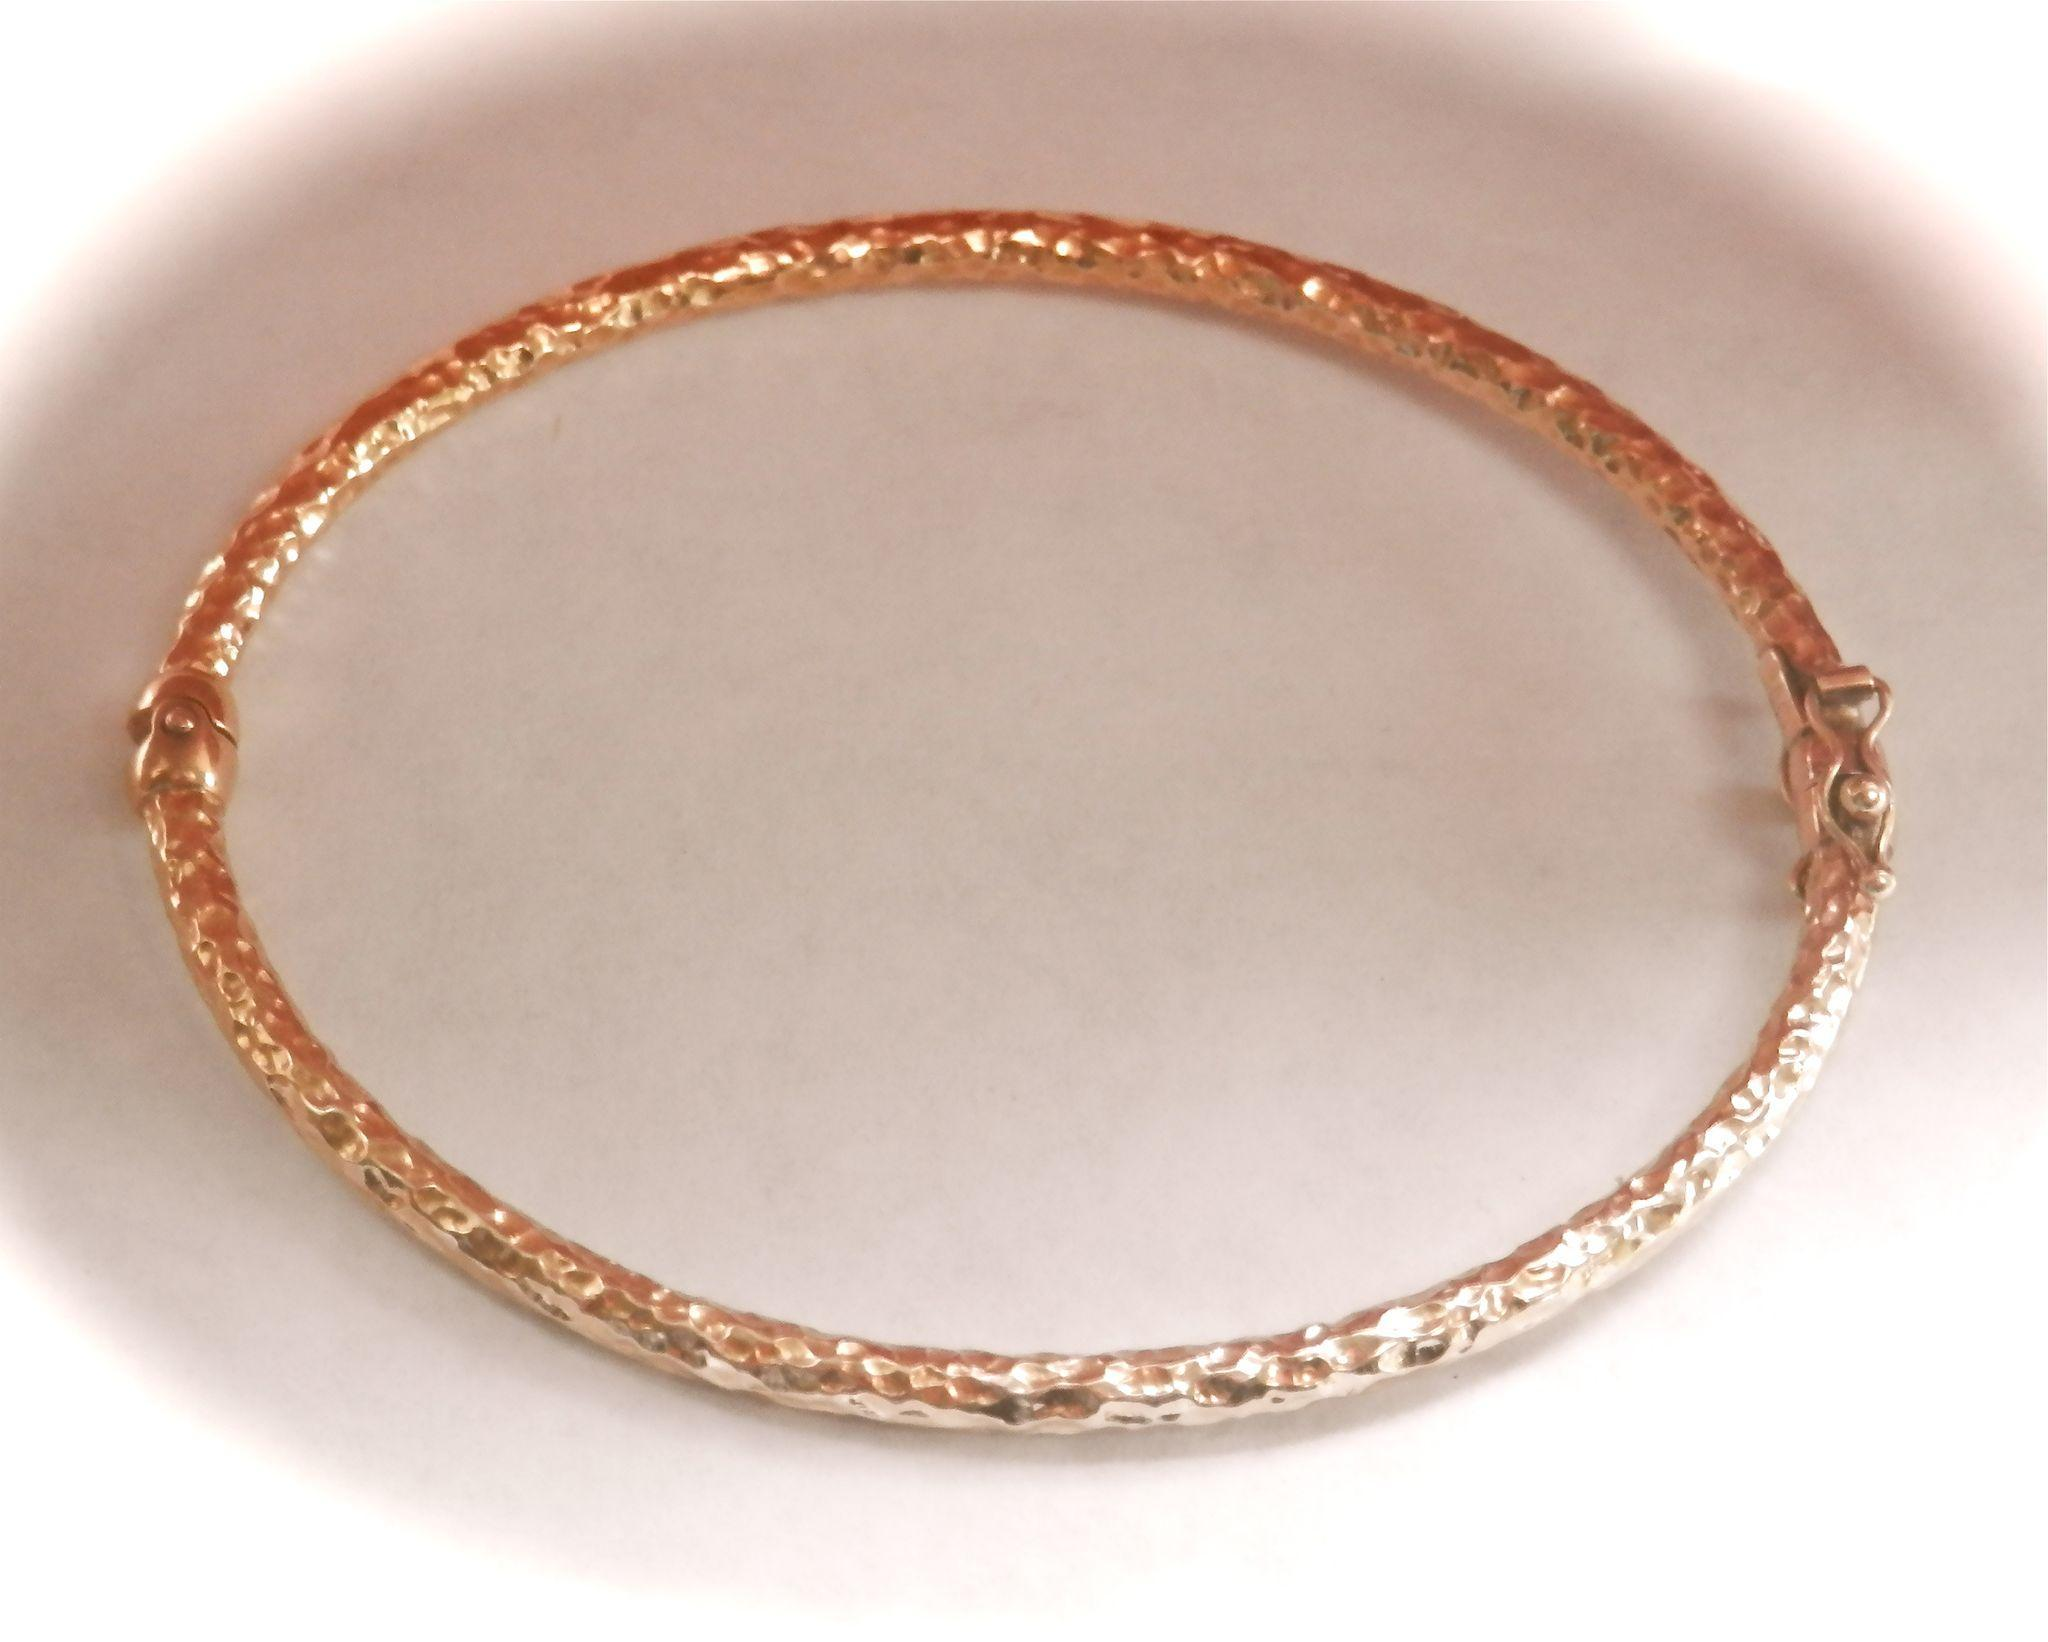 Lovely Textured 9K Y/Gold Hinged Bracelet Bangle